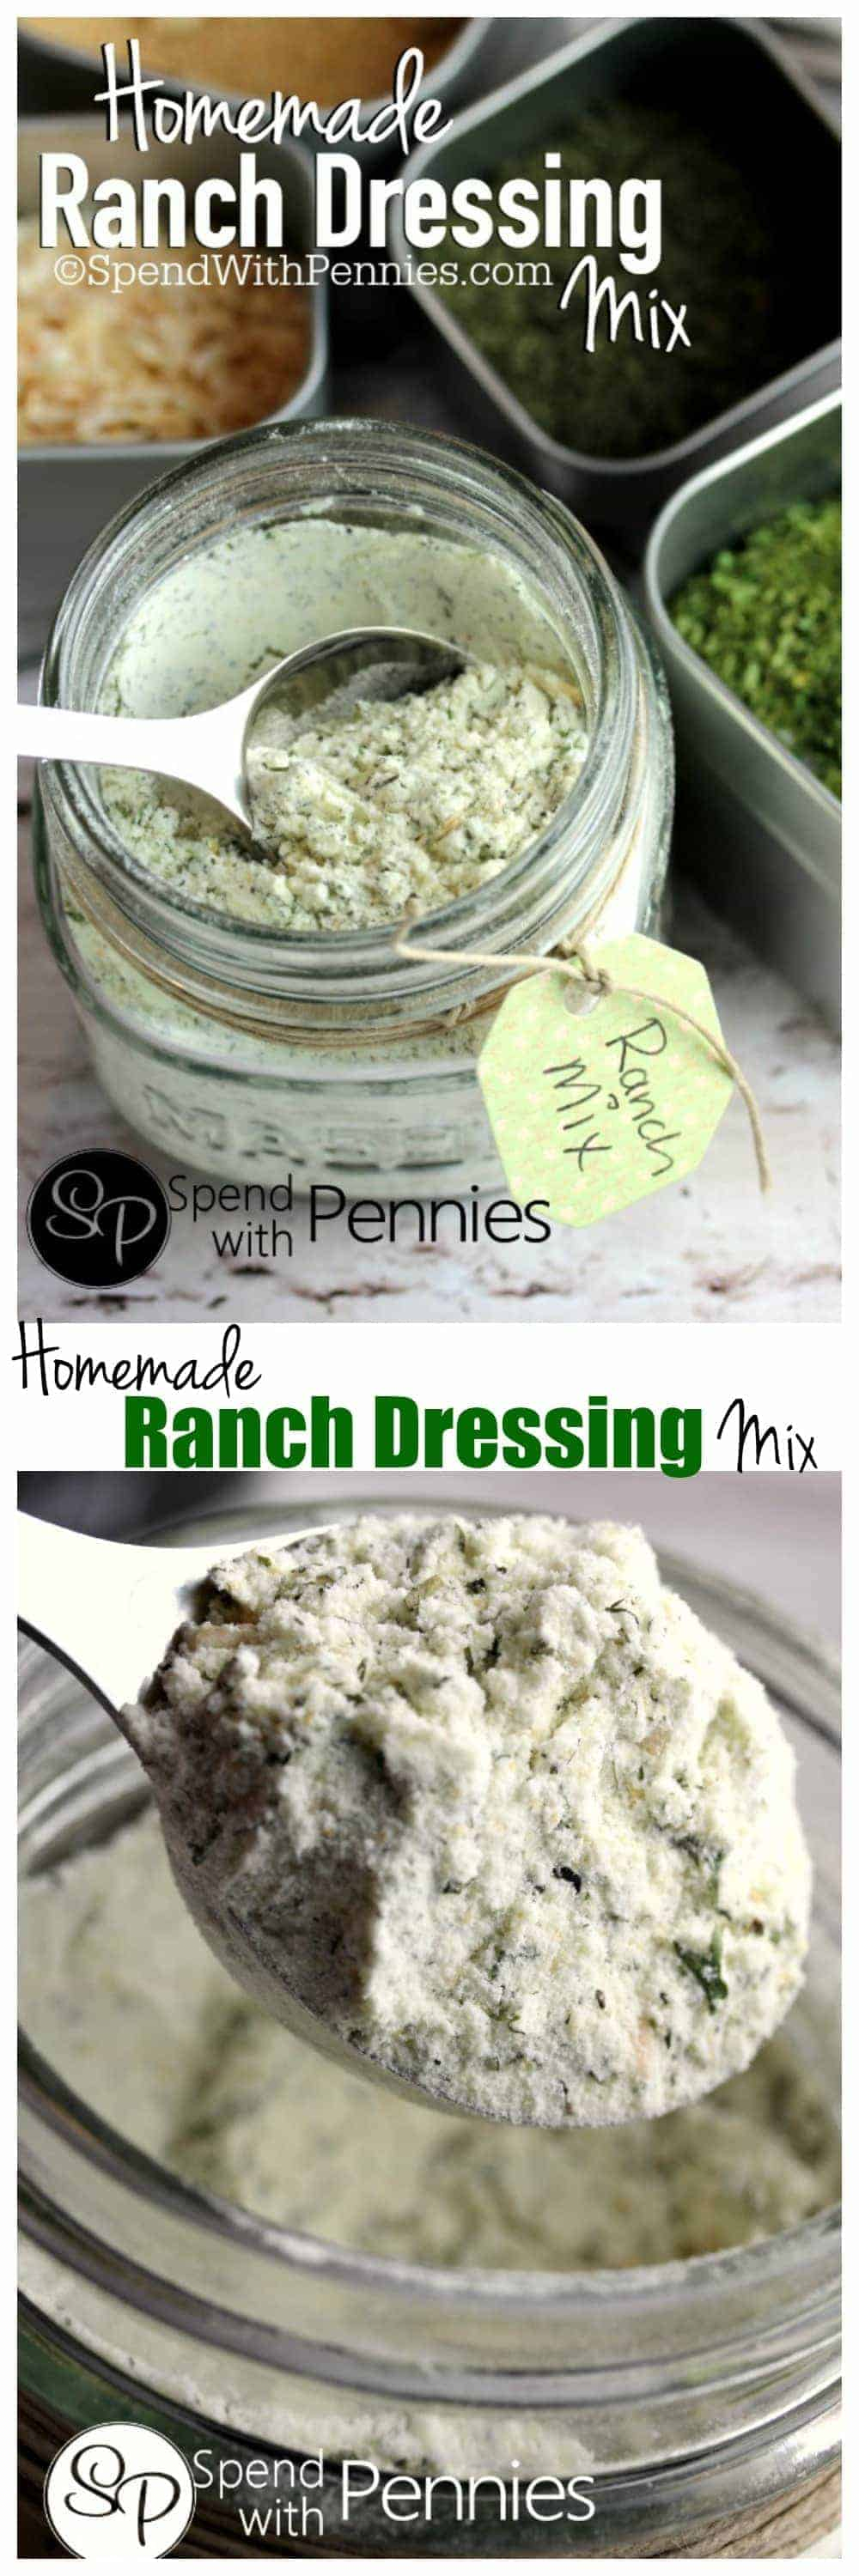 Homemade Ranch Dressing Mix n a jar with a spoon, a closeup of a spoon of ranch dressing mix